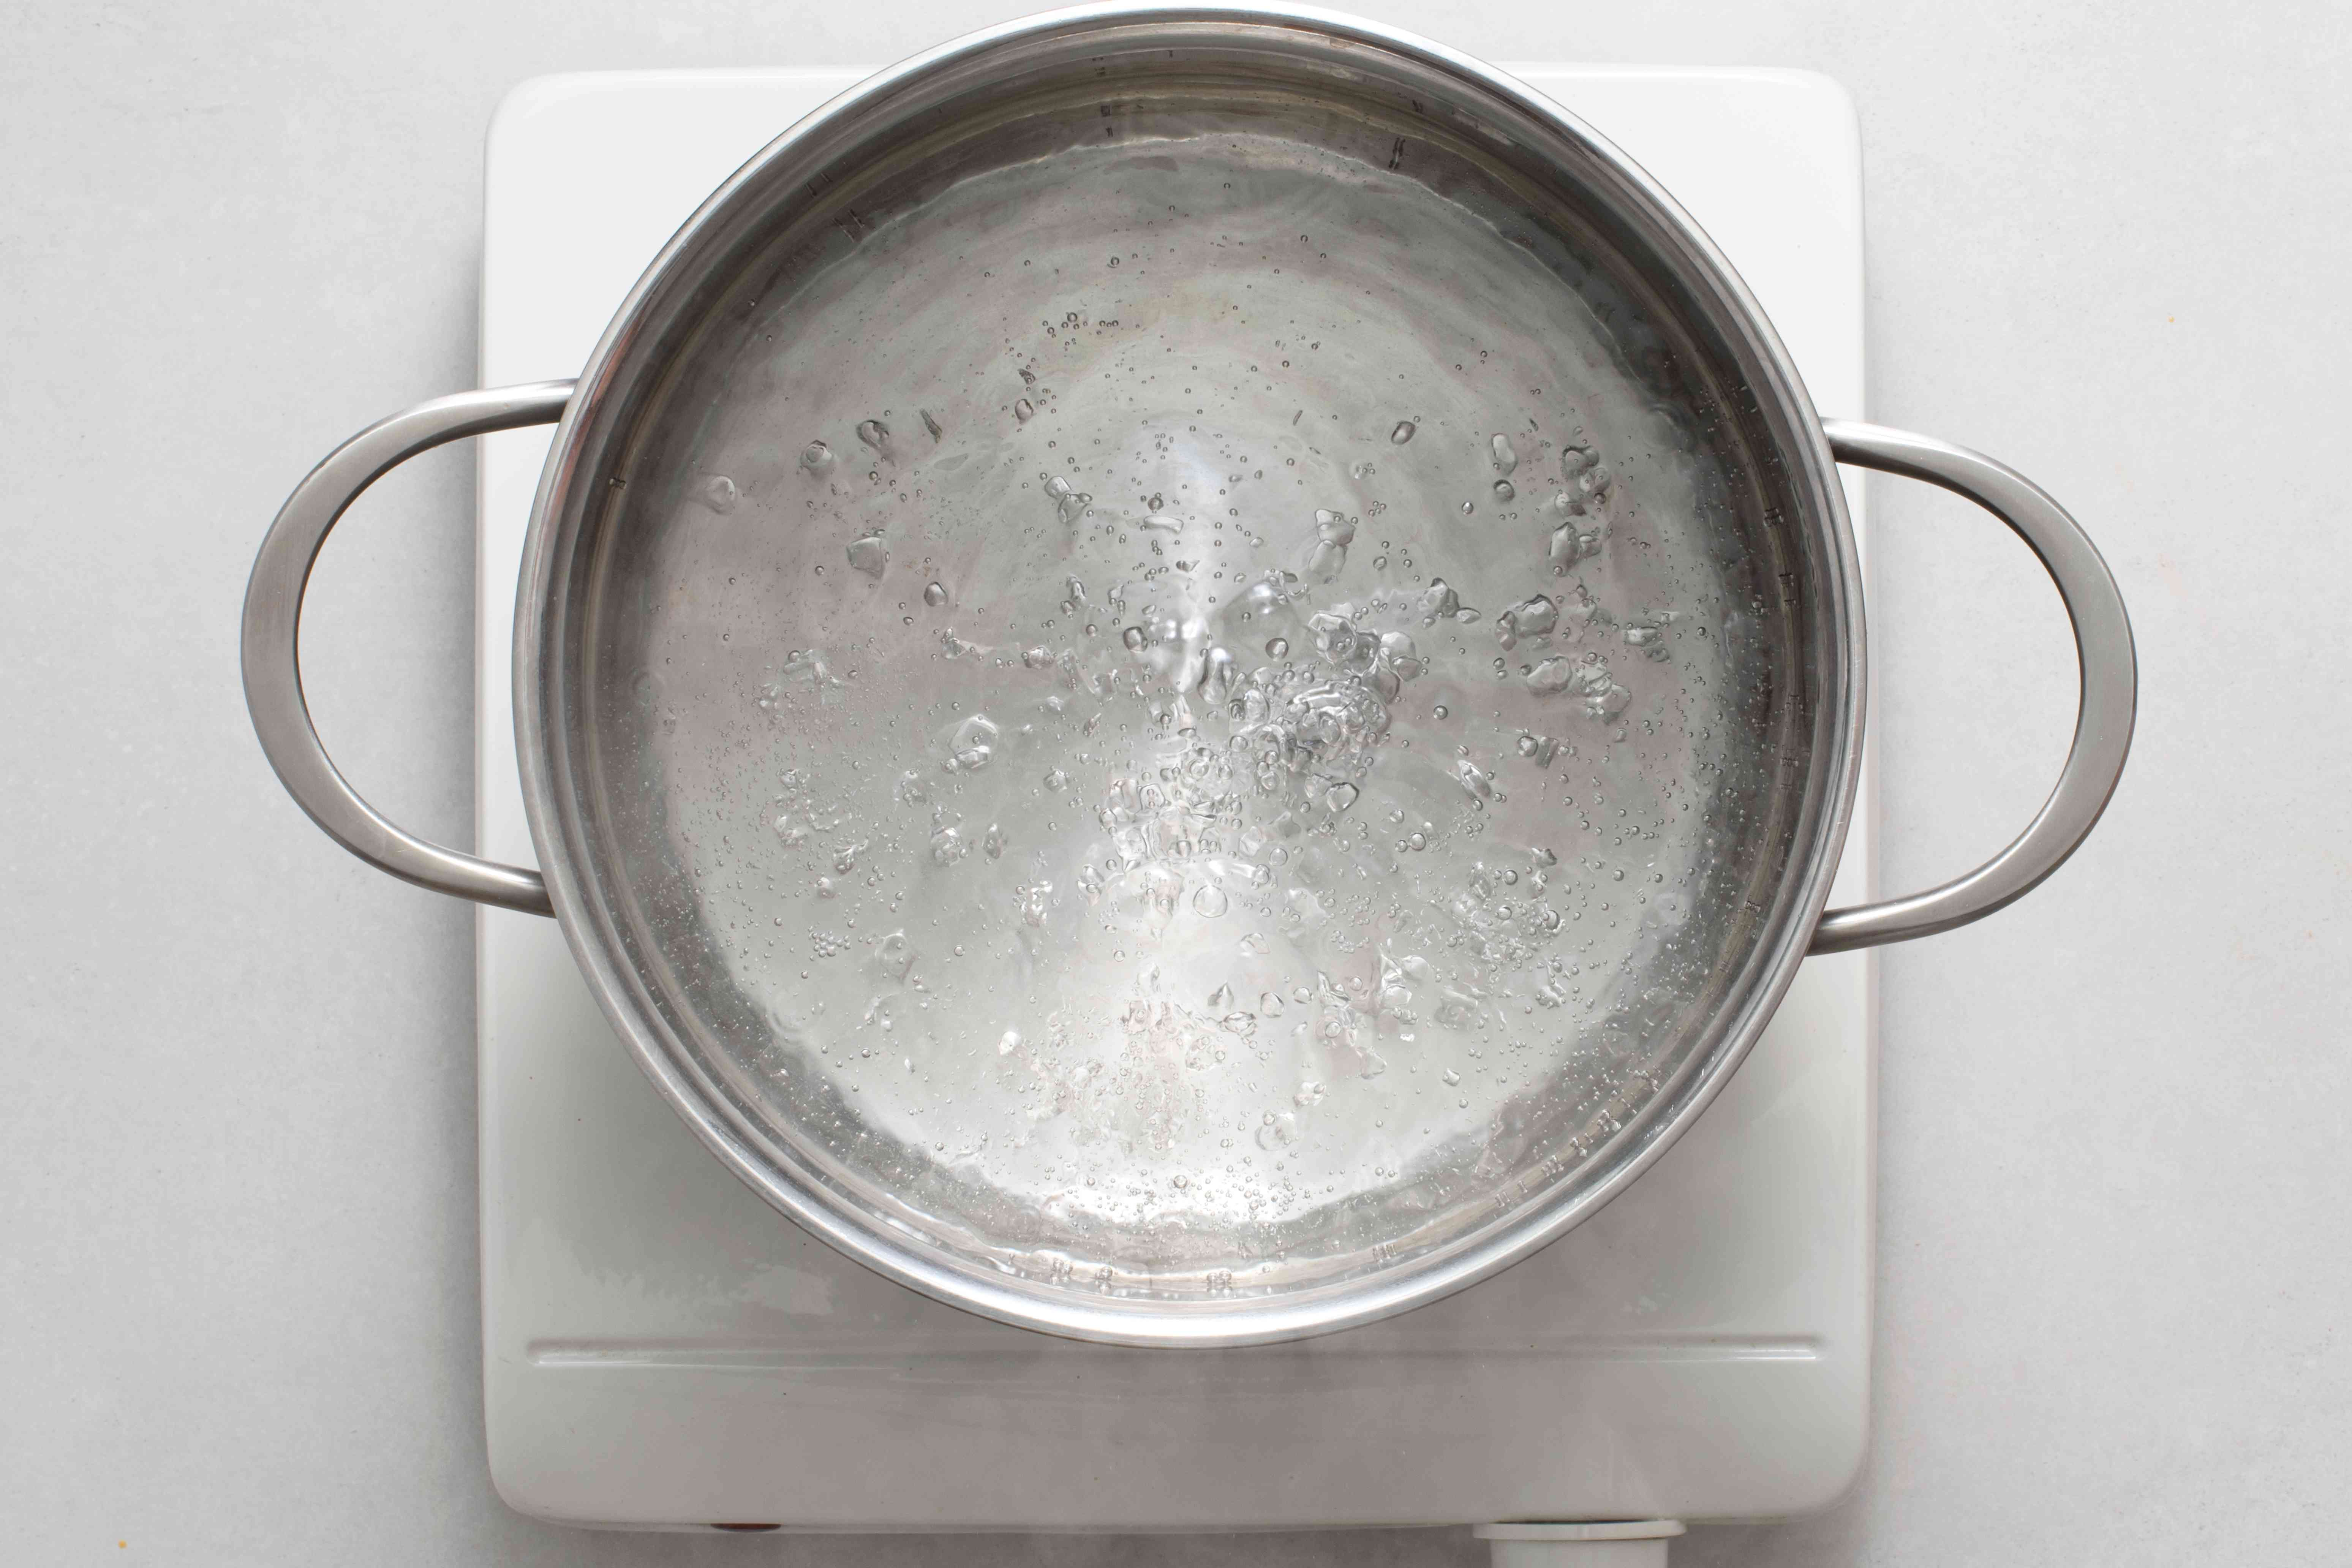 water boiling in a pot